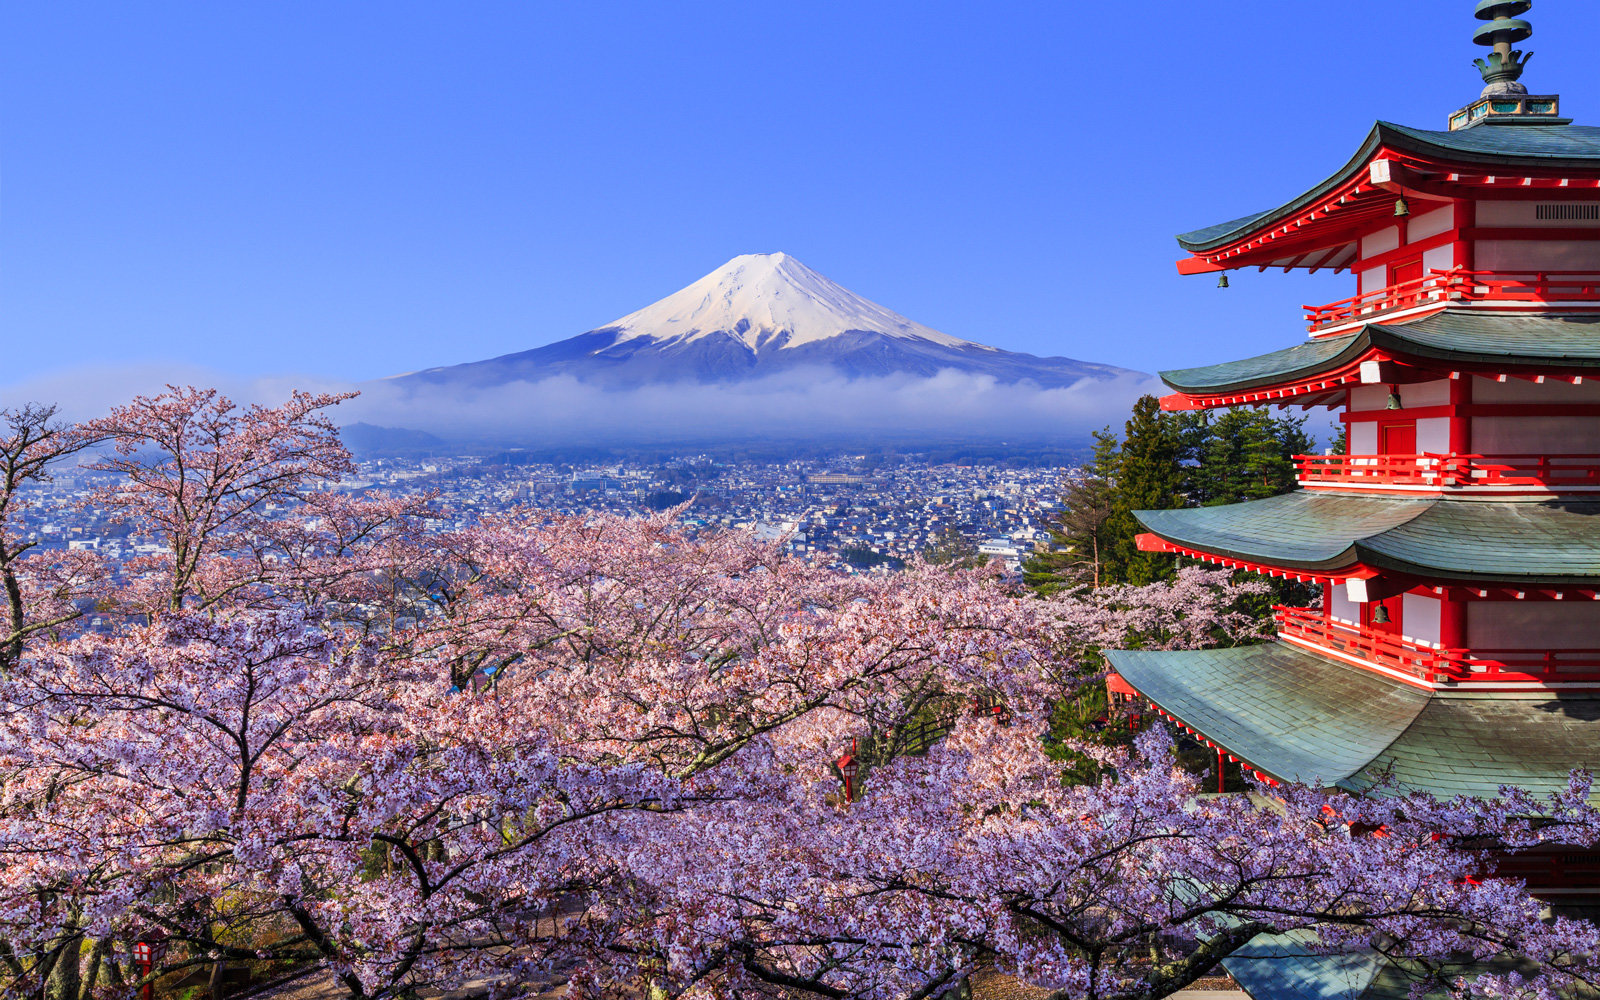 Japan Cherry Blossom Festival 2018: Where and When to Visit | Travel + Leisure